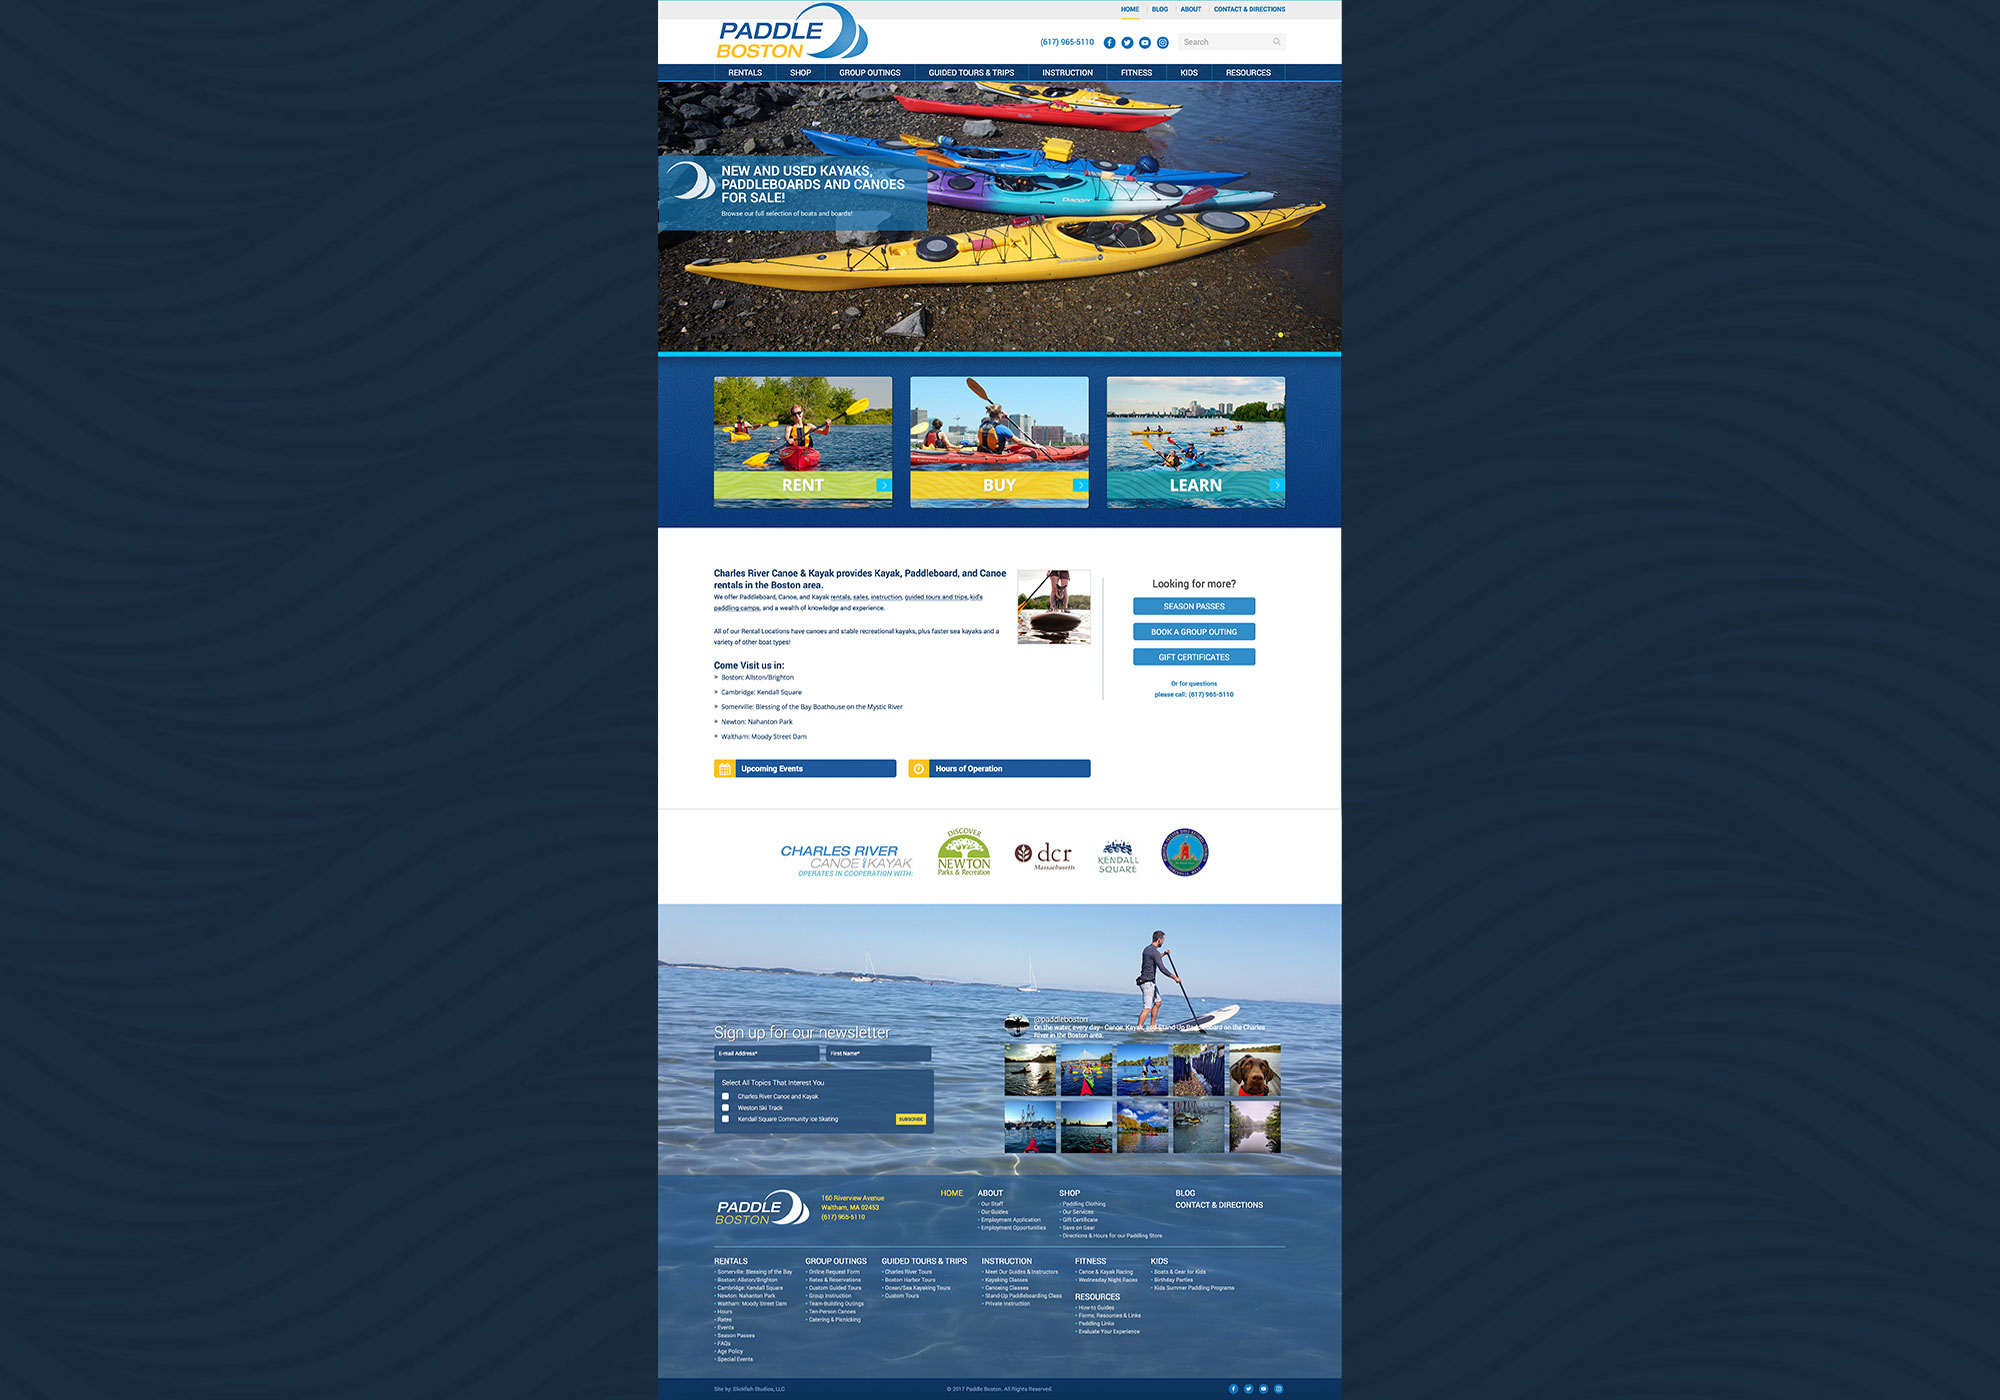 A composite of the homepage for Paddle Boston designed by SlickFish Studios in Portland, Maine.